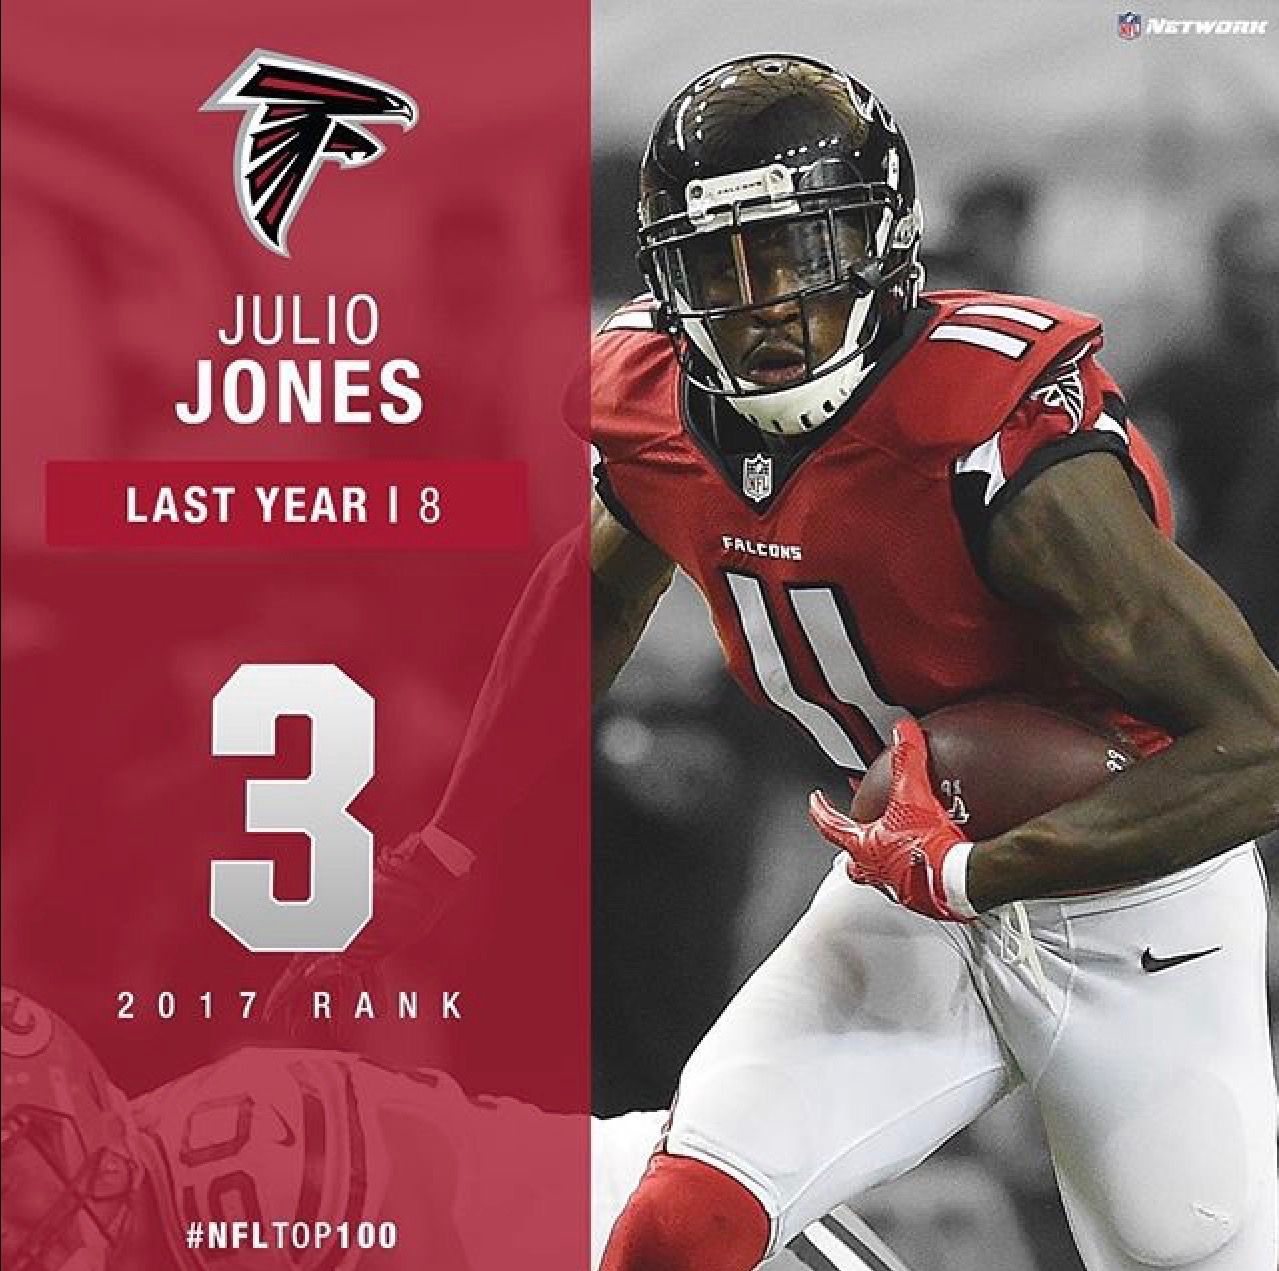 Julio Jones 3 Rated Player In The Nfl By His Peers In 2017 Alabama Rolltide Bama Builtbybama Rtr Crimsontide Rammerjammer Julio Jones Nfl Nfl Players